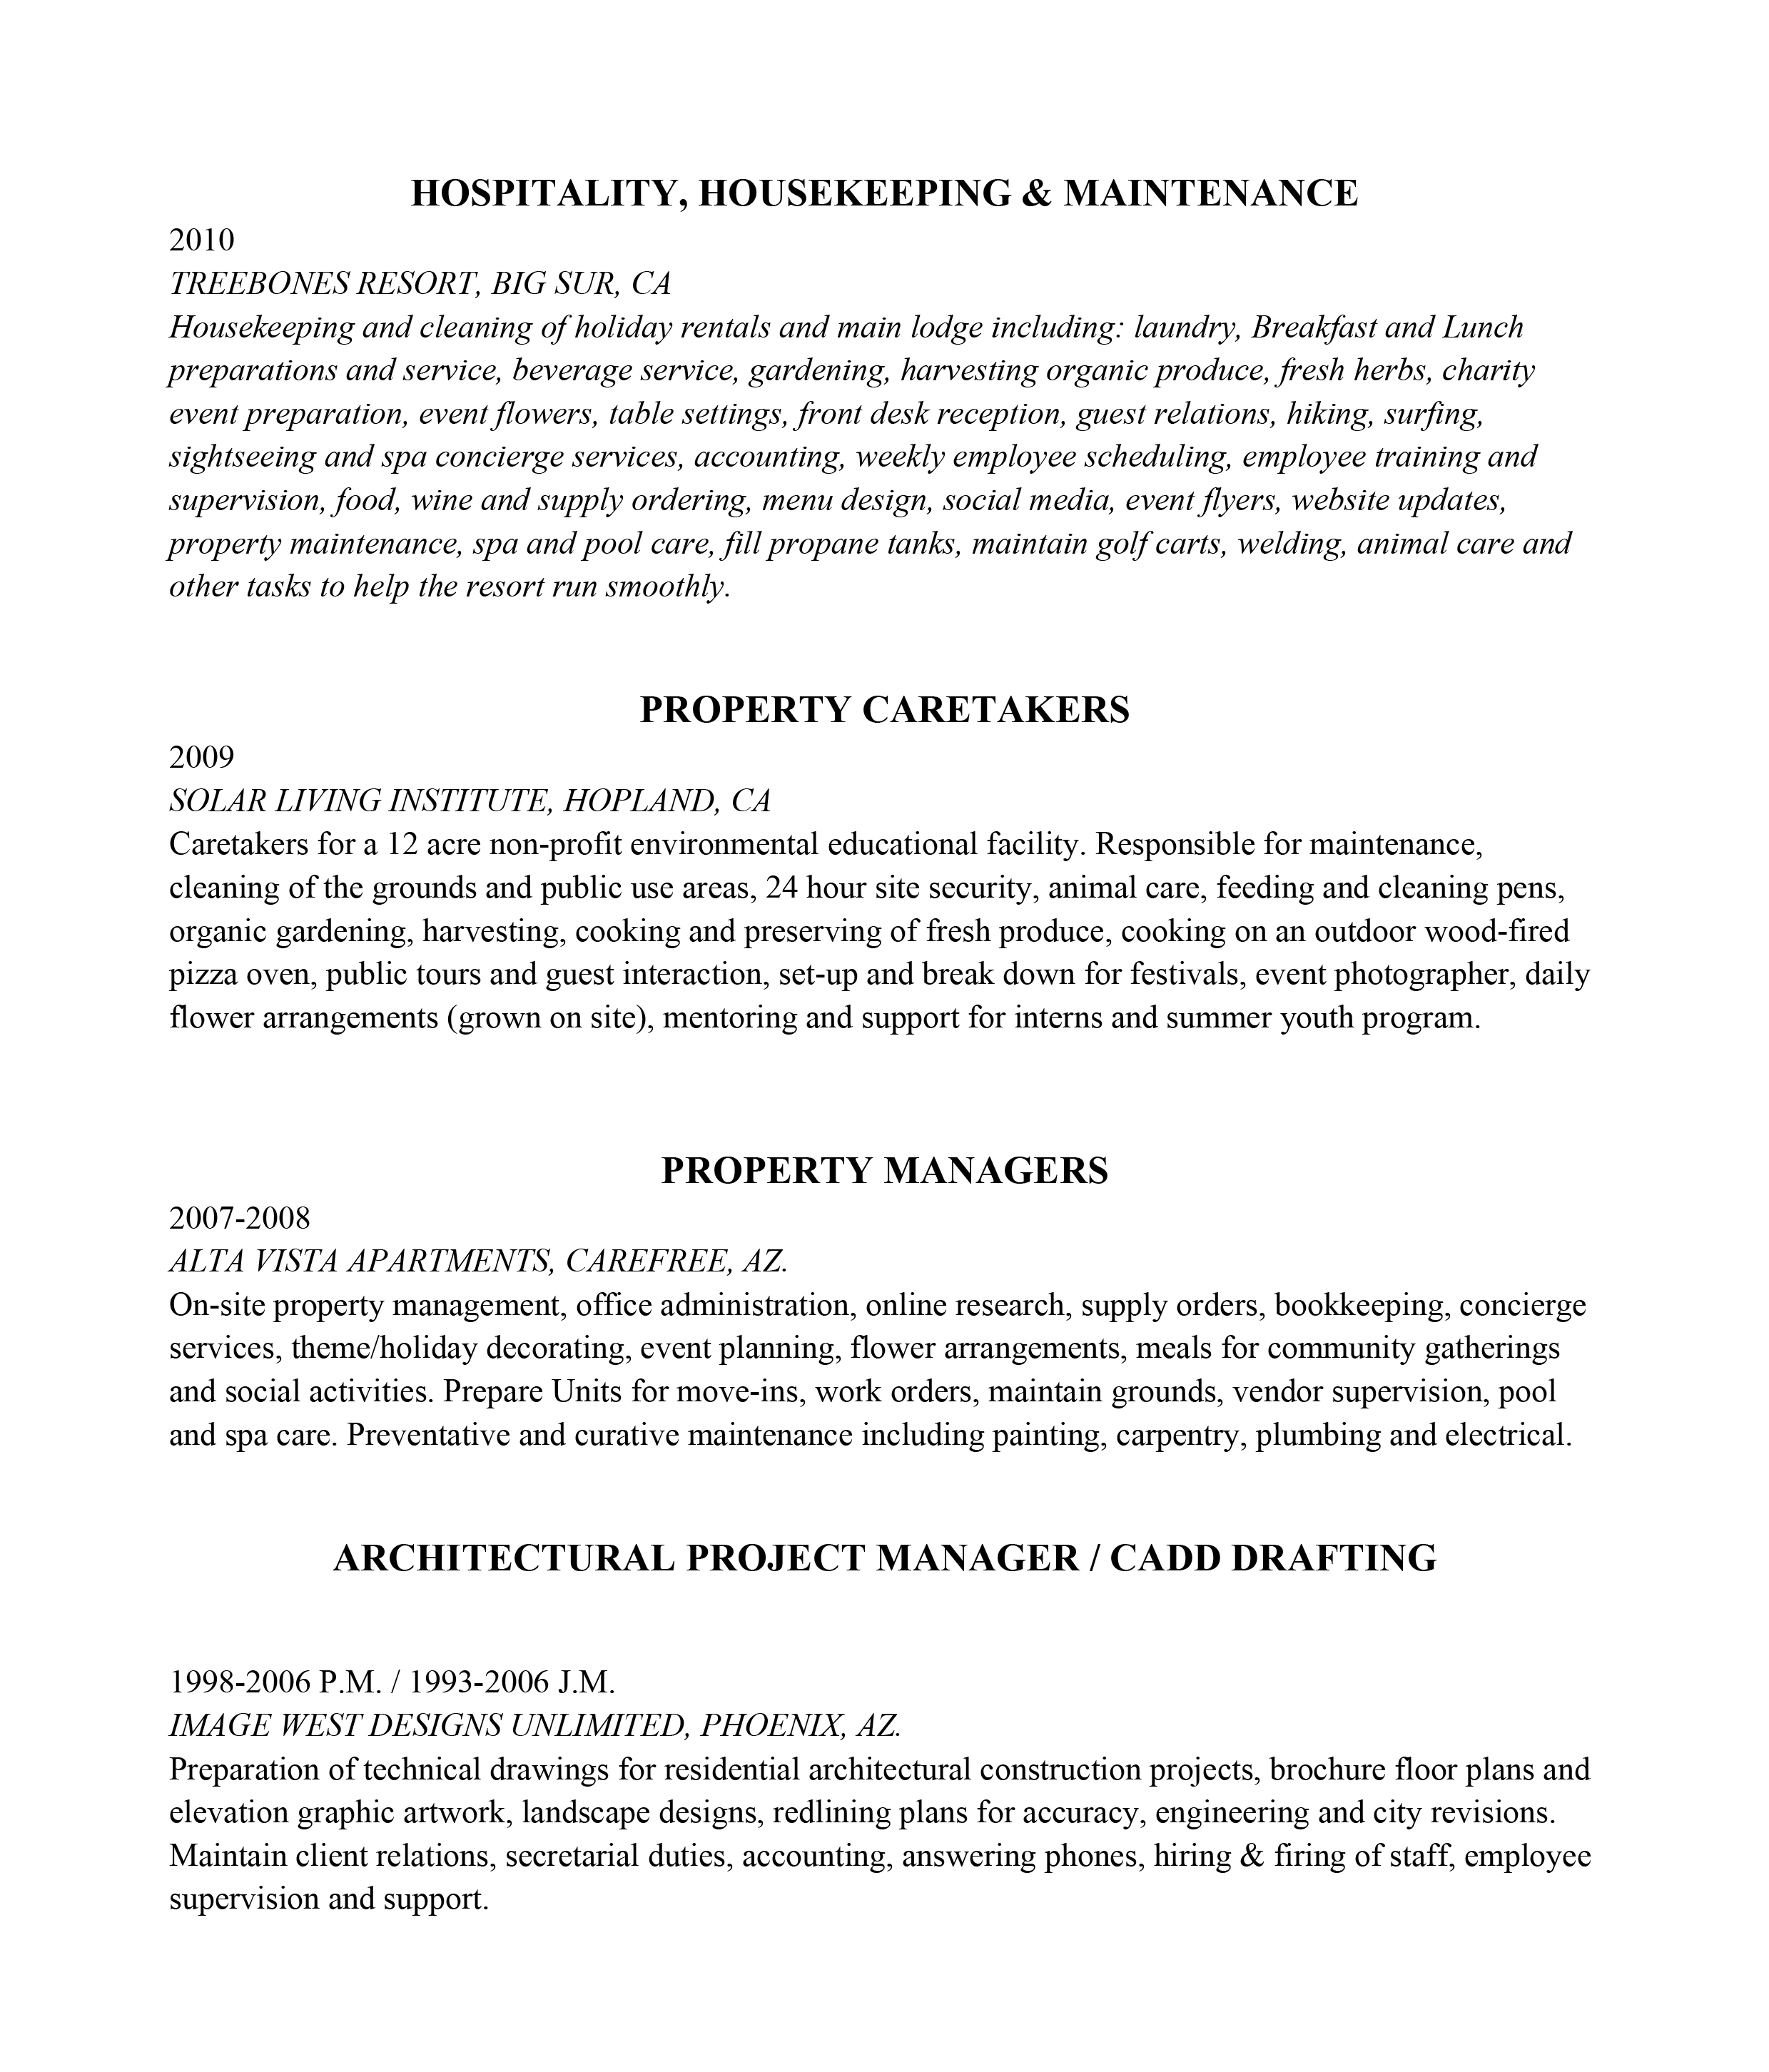 program manager duties 22 agile program manager responsibilities sample resume for construction project manager farm laborer - Architectural Project Manager Resume